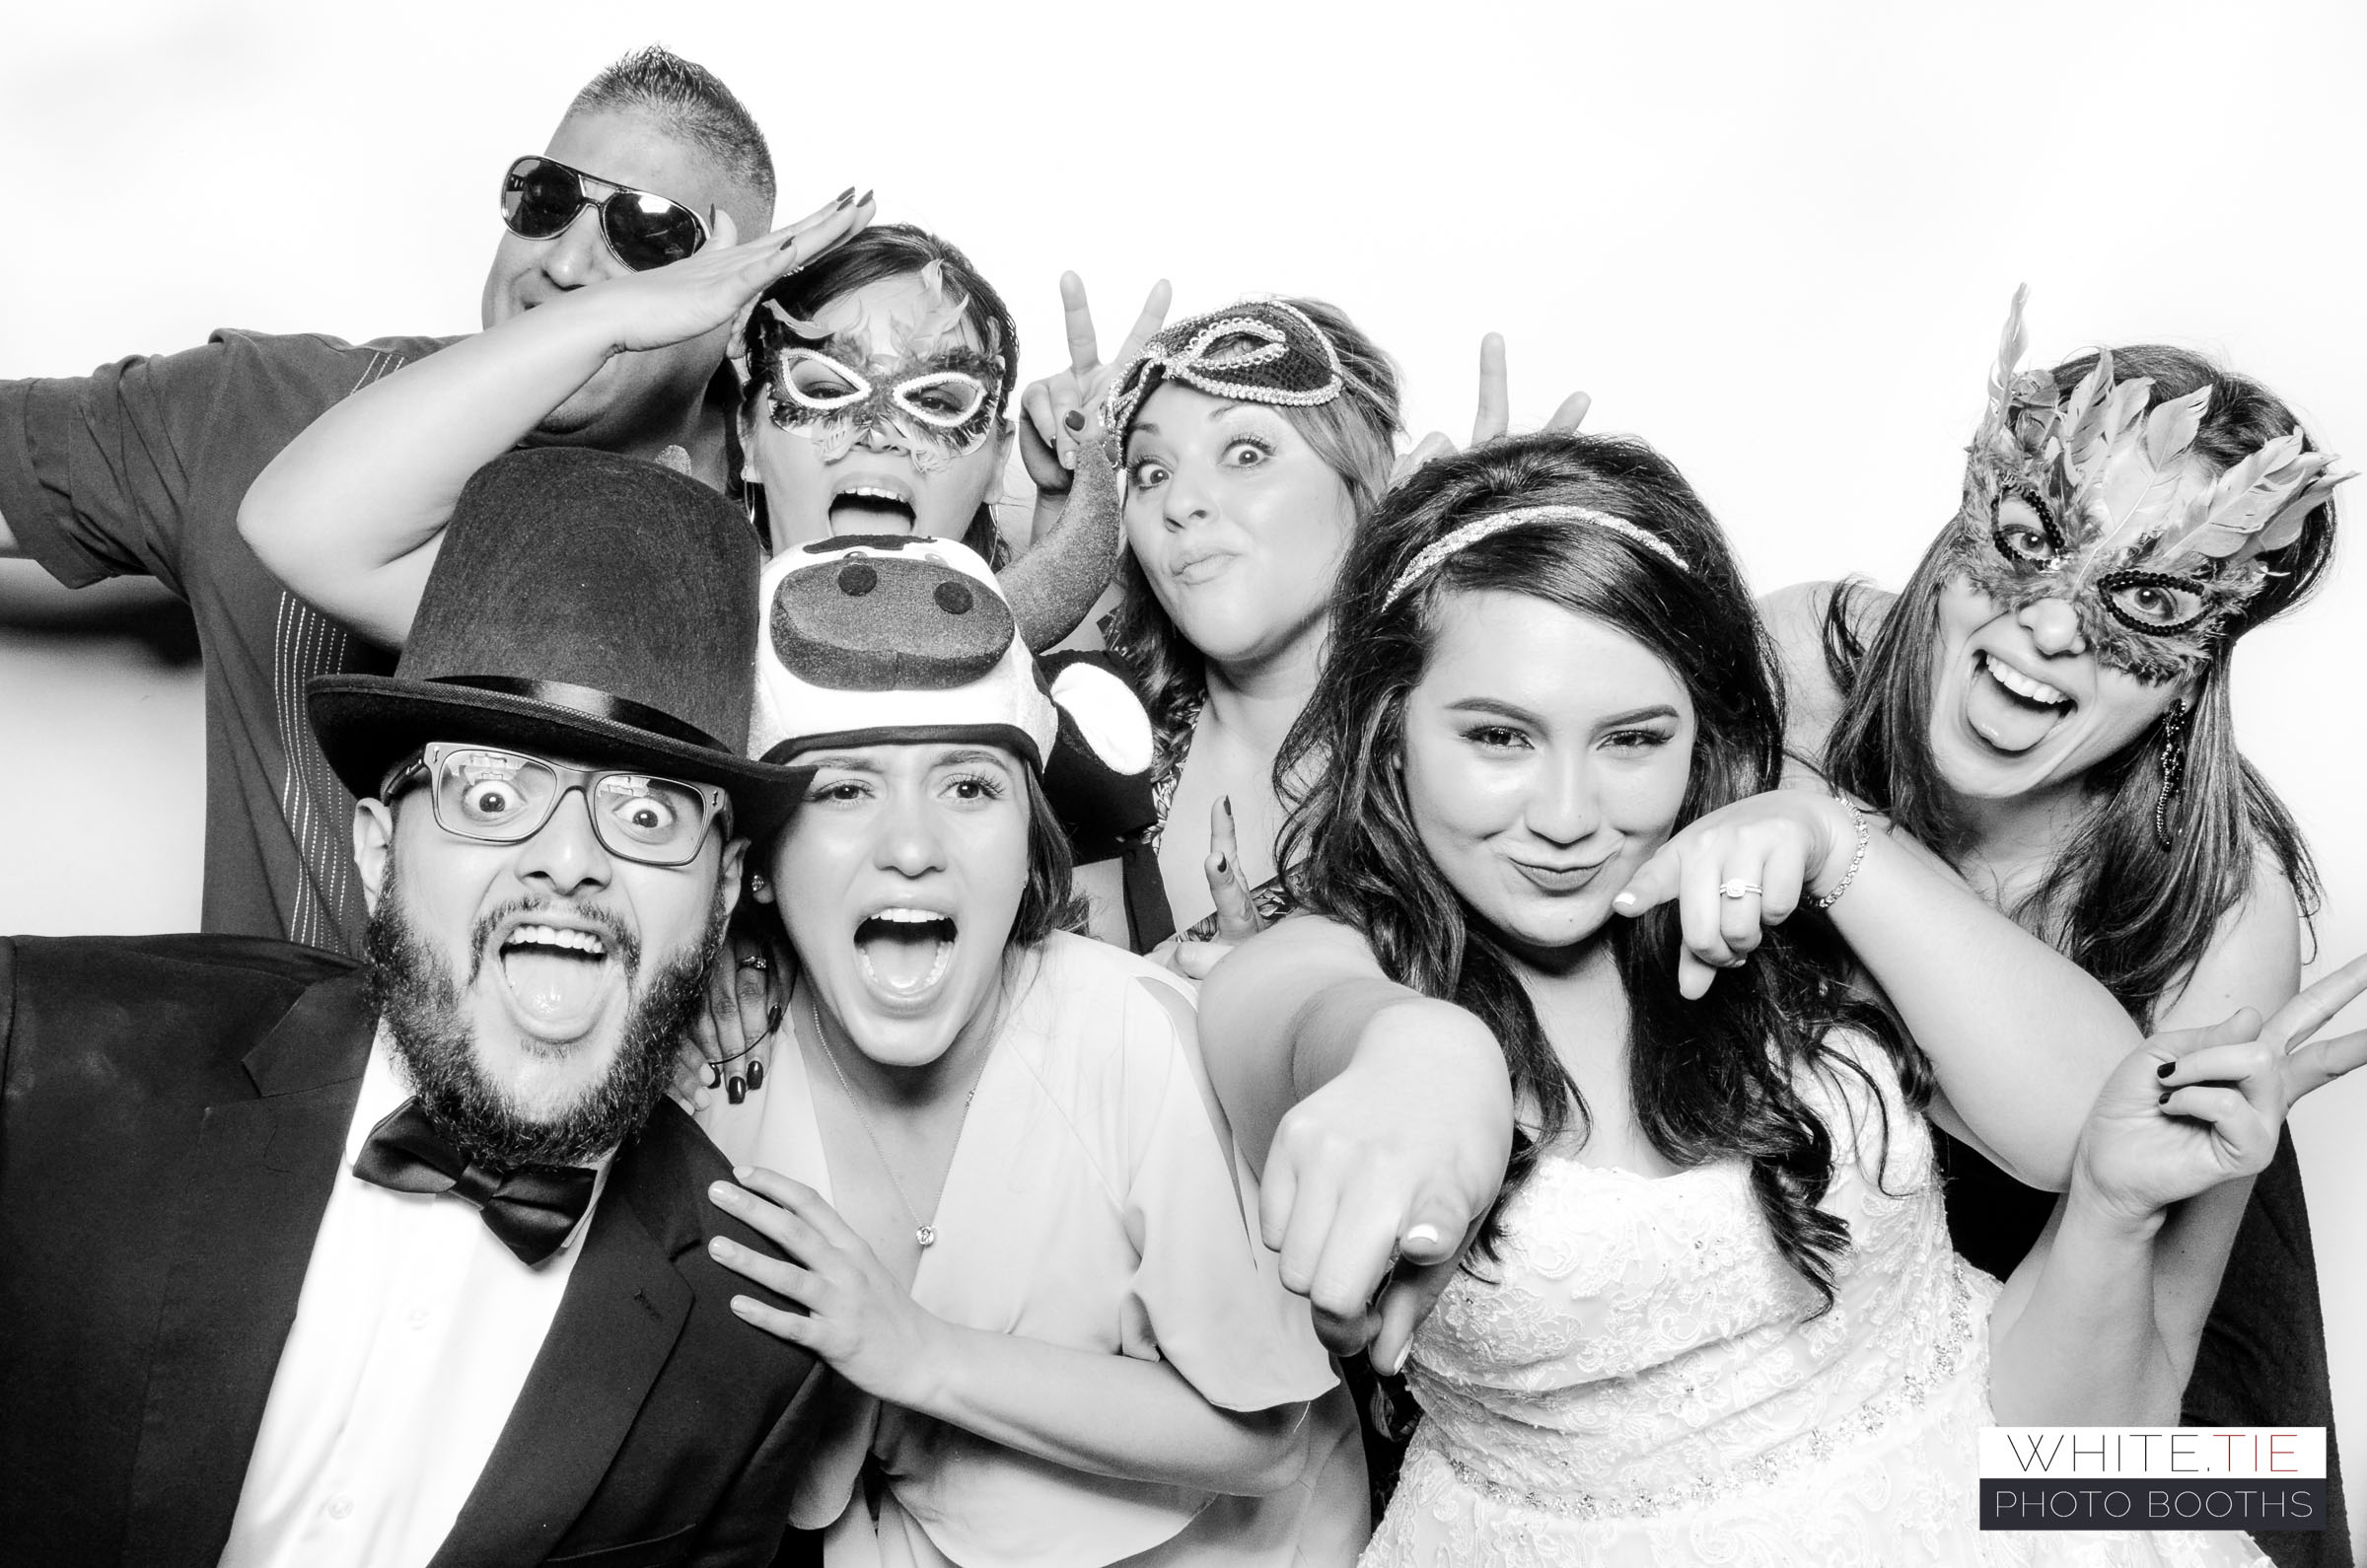 Yuma Wedding Photo Booth